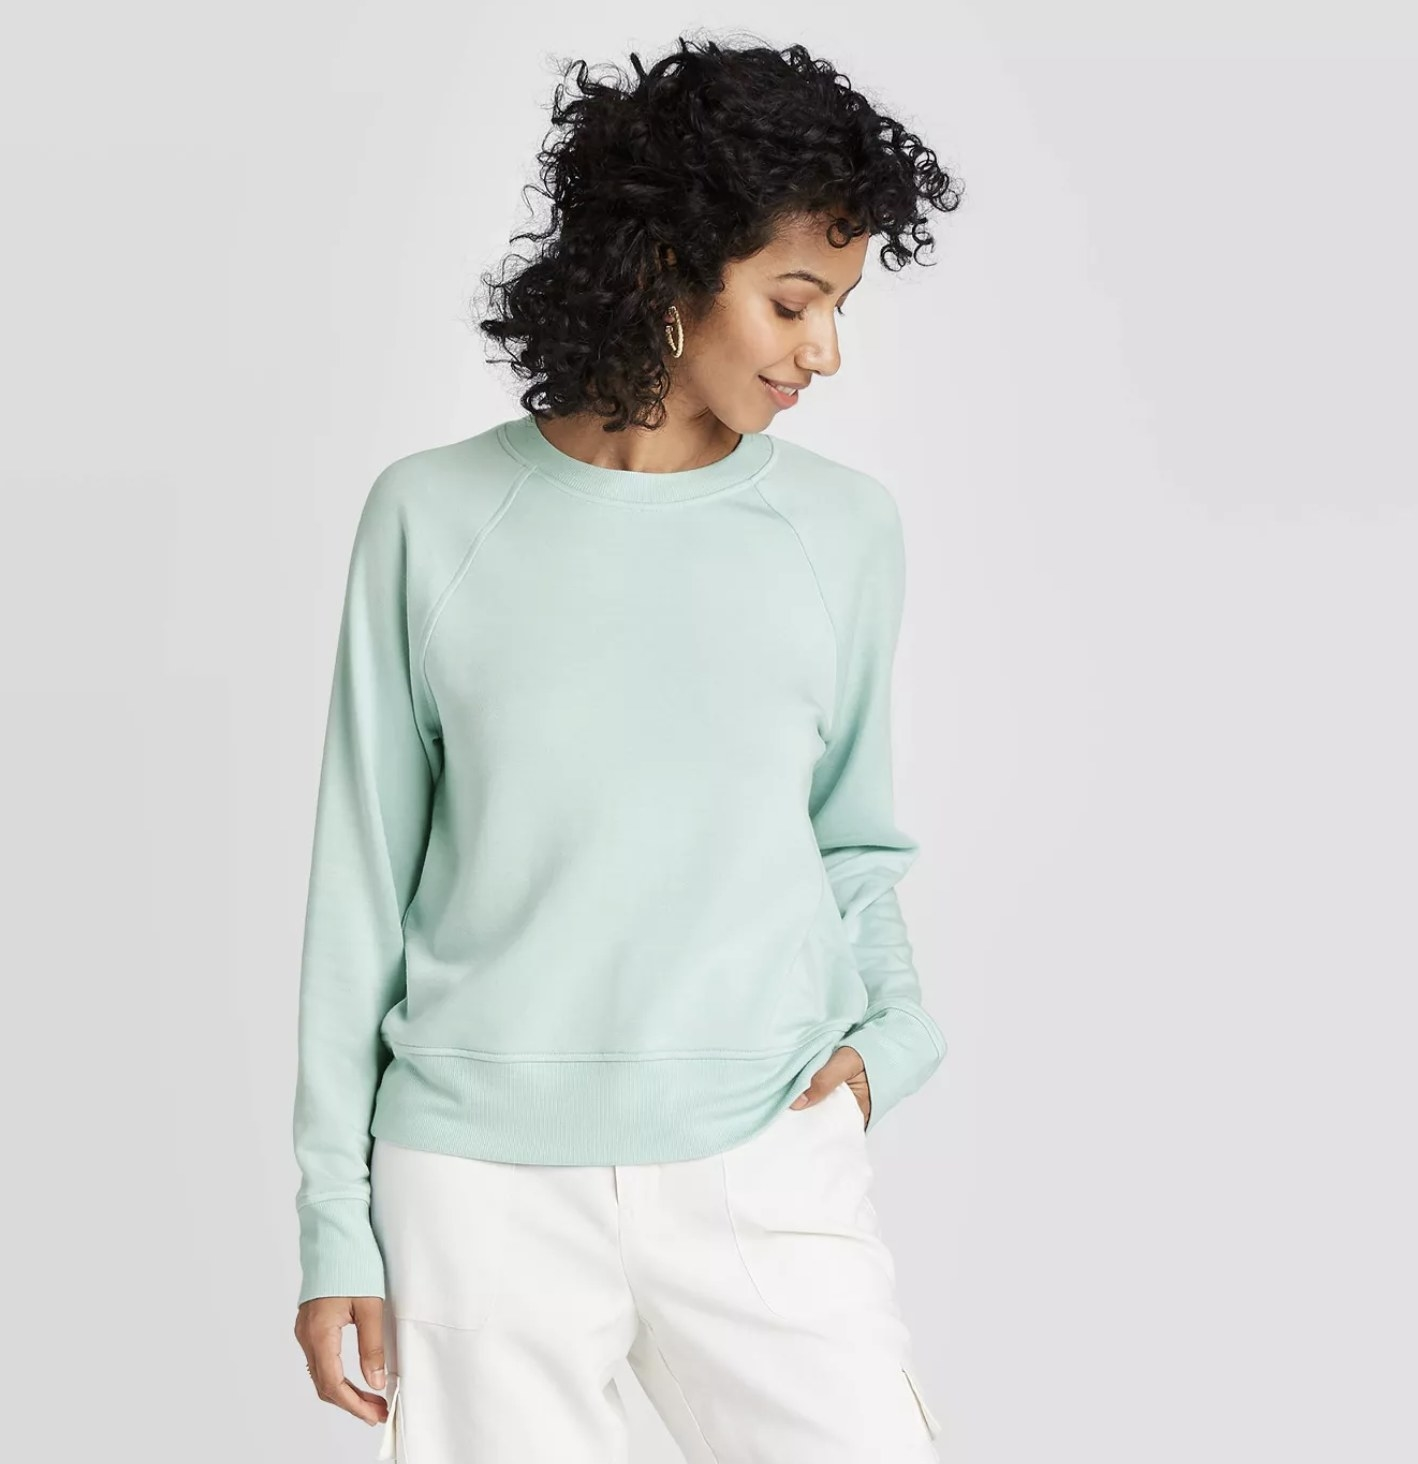 A model wearing the mint green sweatshirt